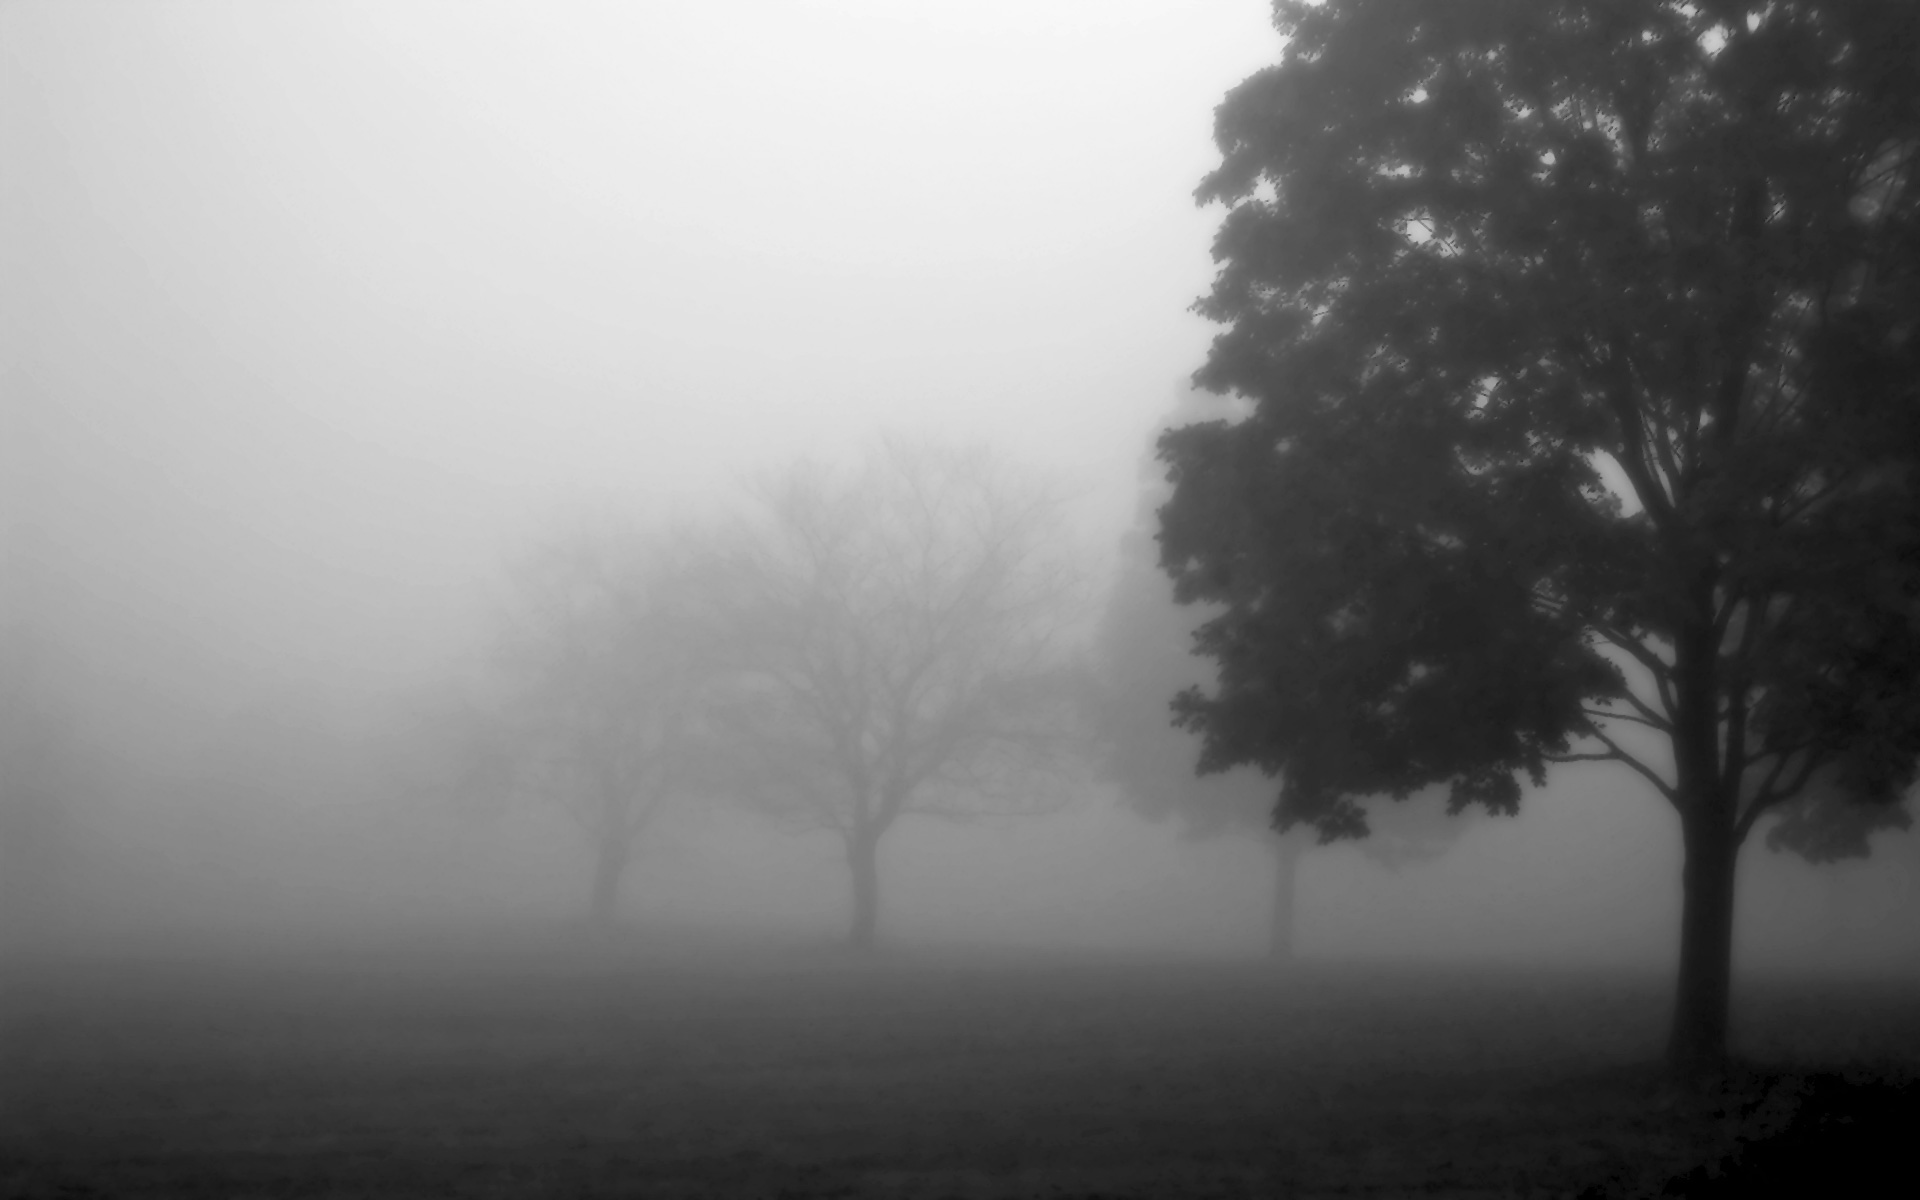 fod hd wallpapers forest black and white in fog cool widescreen wallpapers